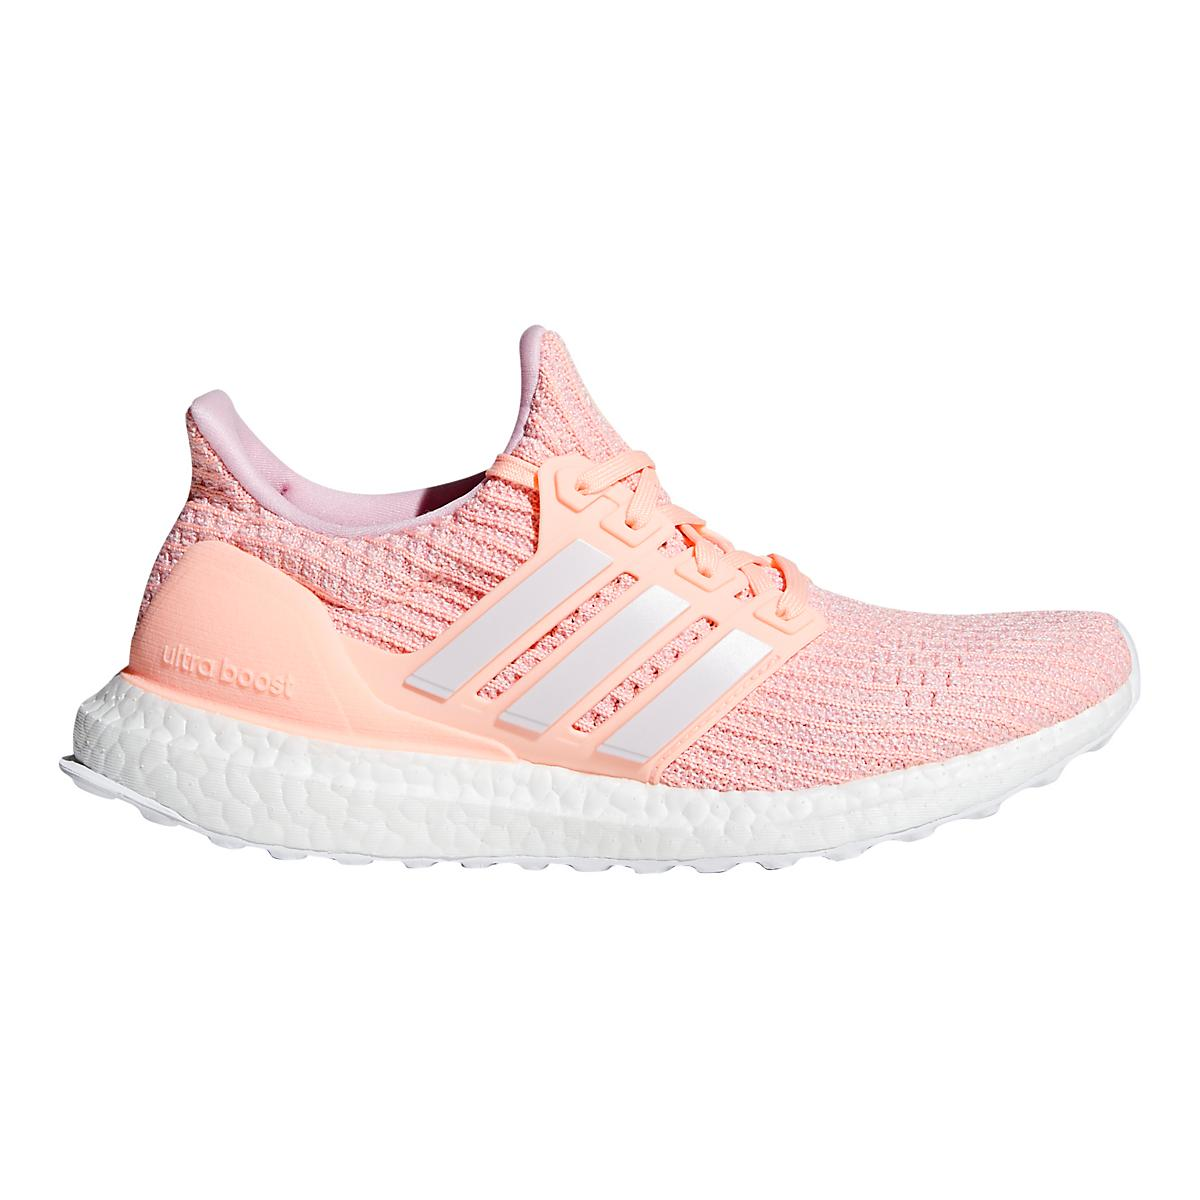 promo code 2e716 67499 Womens adidas Ultra Boost Running Shoe at Road Runner Sports